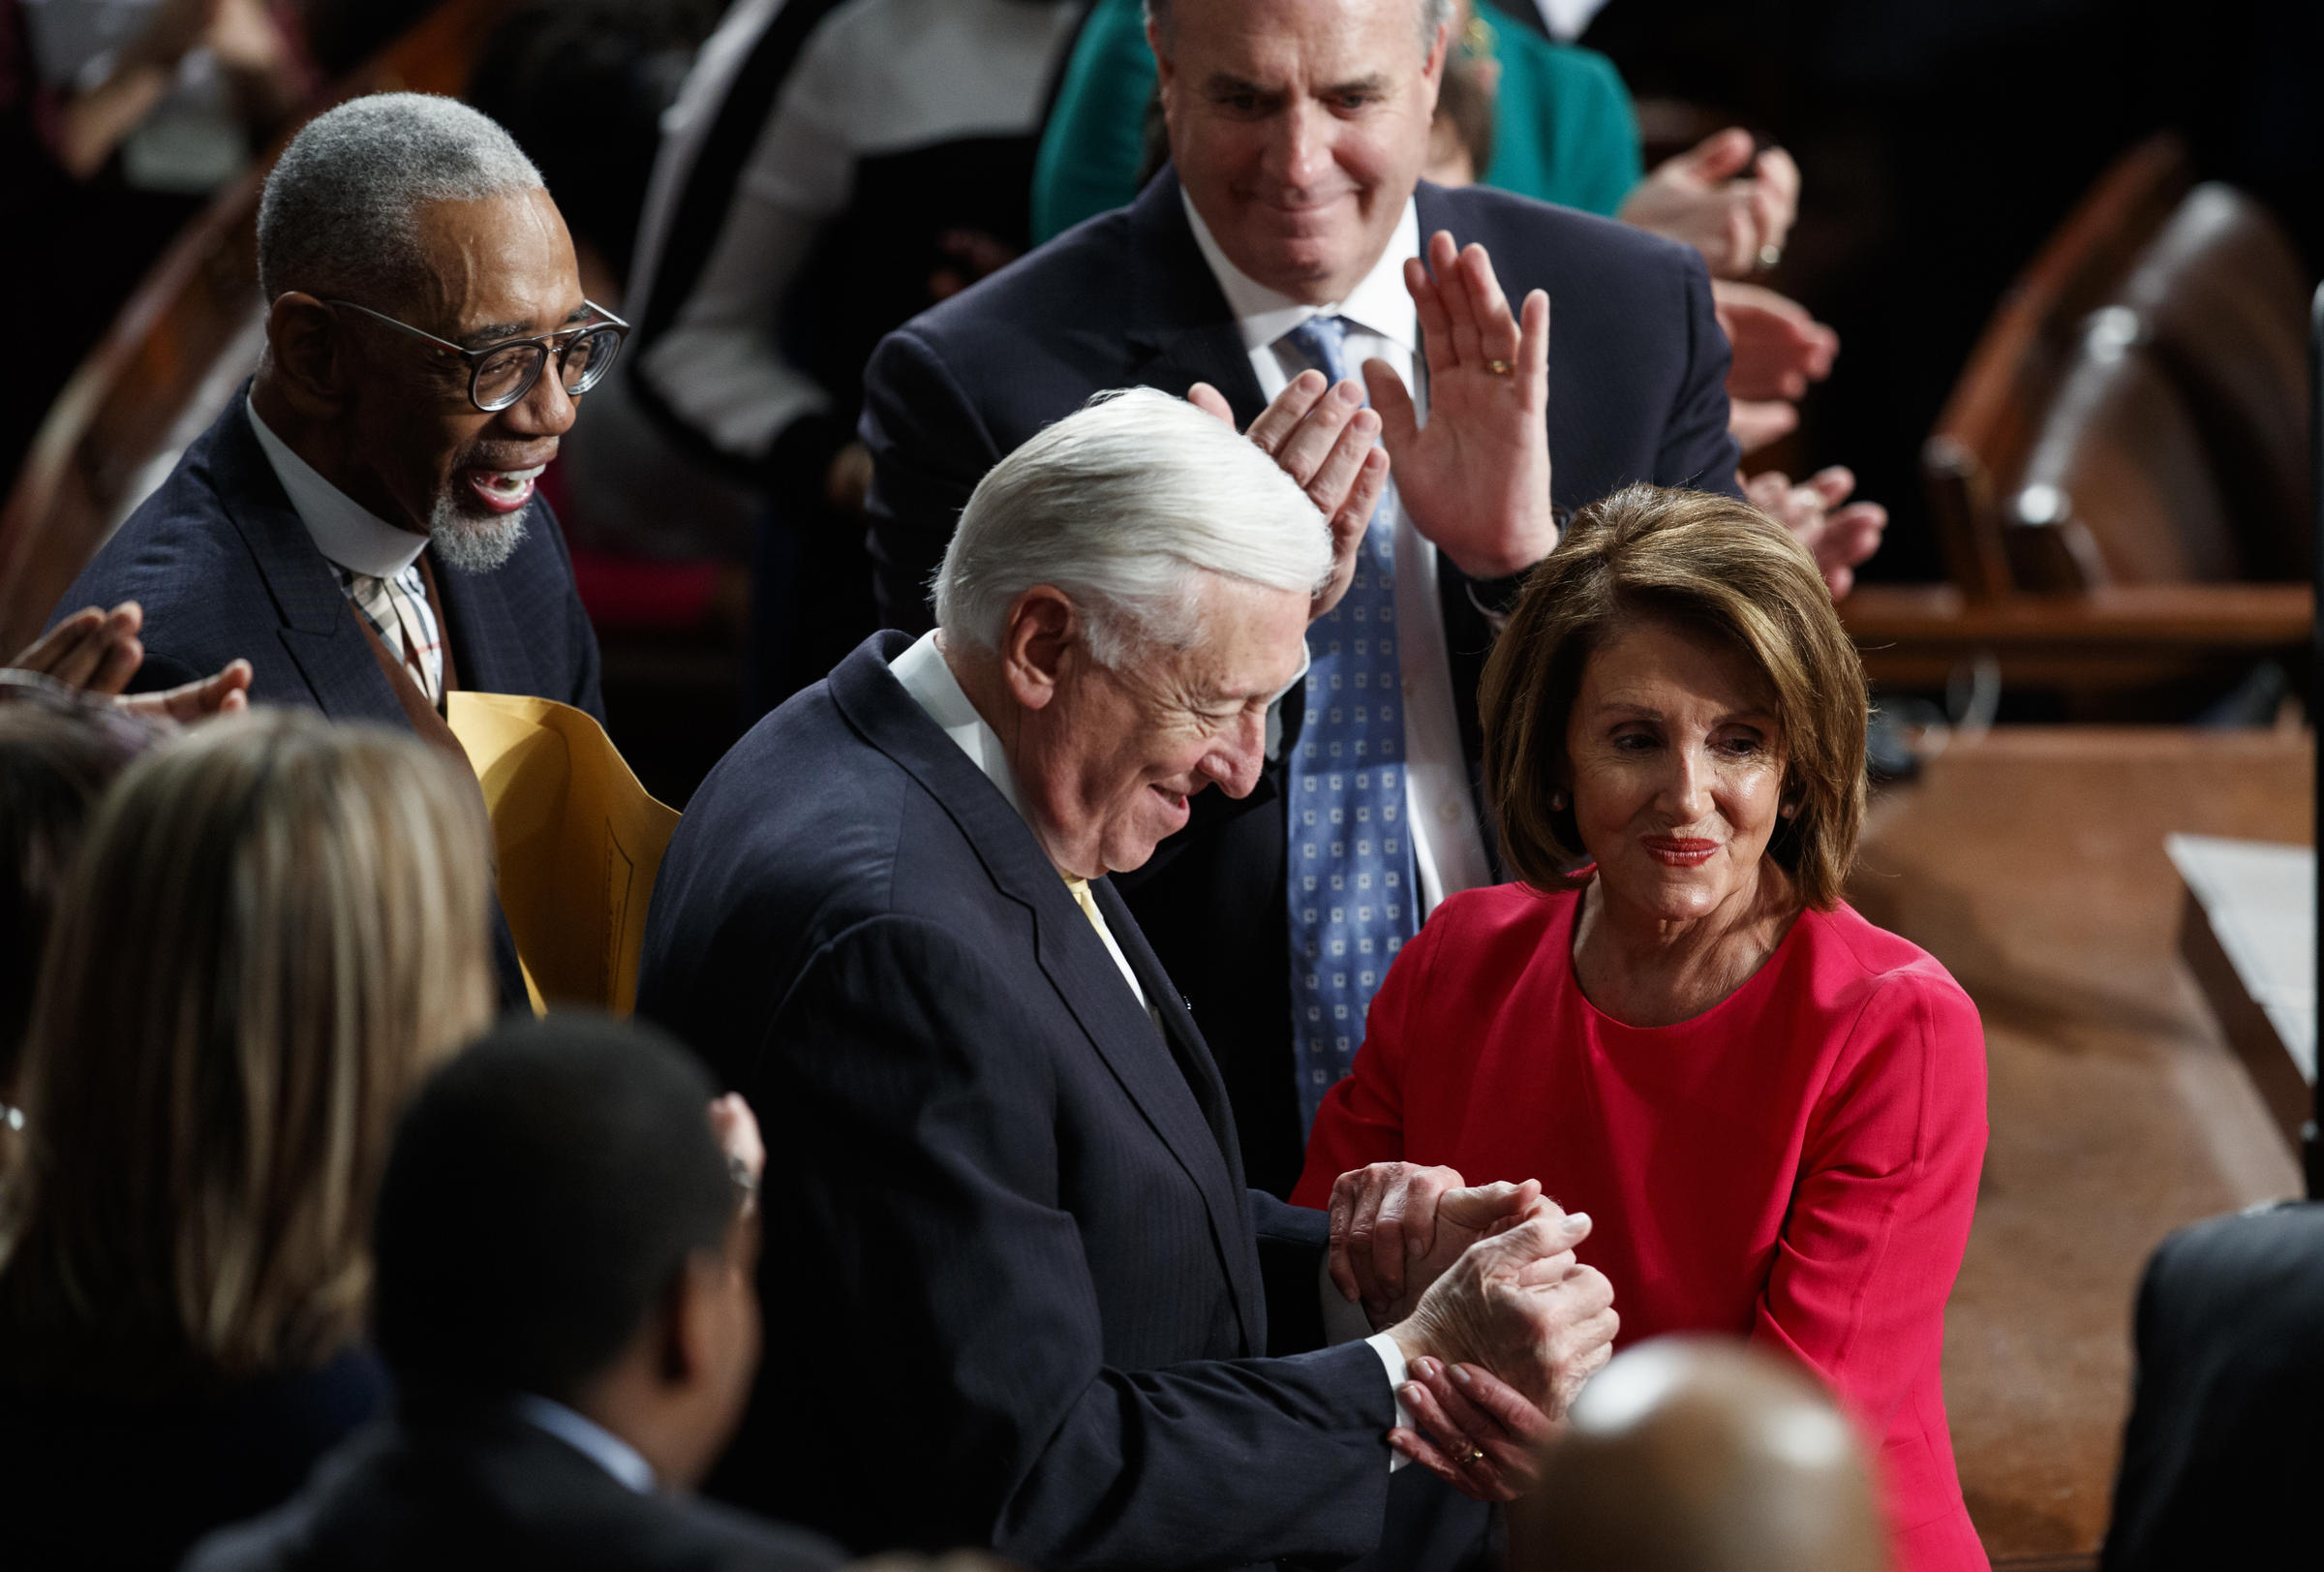 New Speaker of the House Nancy Pelosi D-Calif. and House Majority Leader Steny Hoyer D-Md. are applauded at the Capitol on Thursday as Democrats officially regain control of the chamber